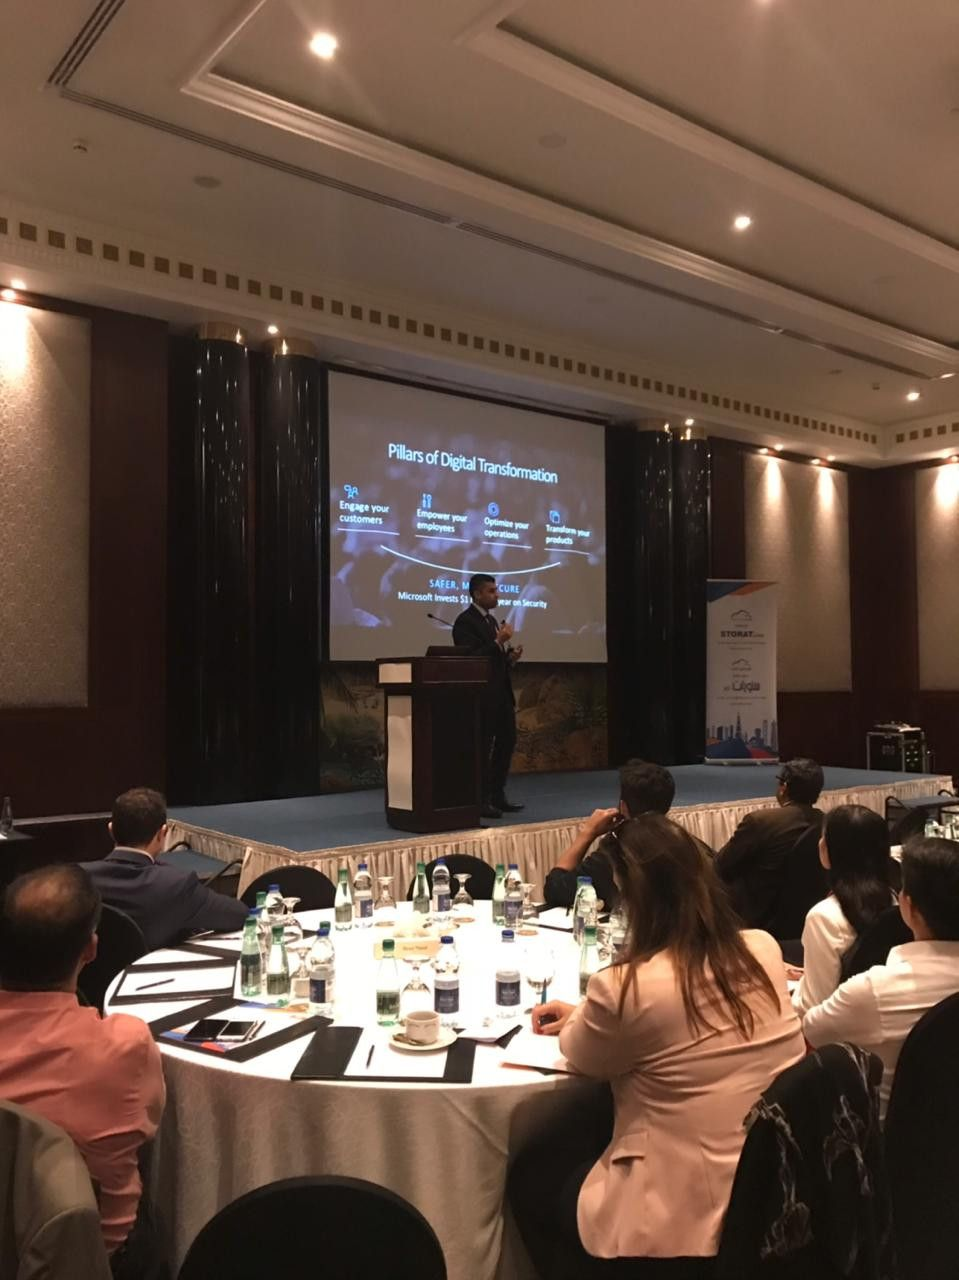 Digital Marketing Workshop In Dubai - Dusit Thani Hotel